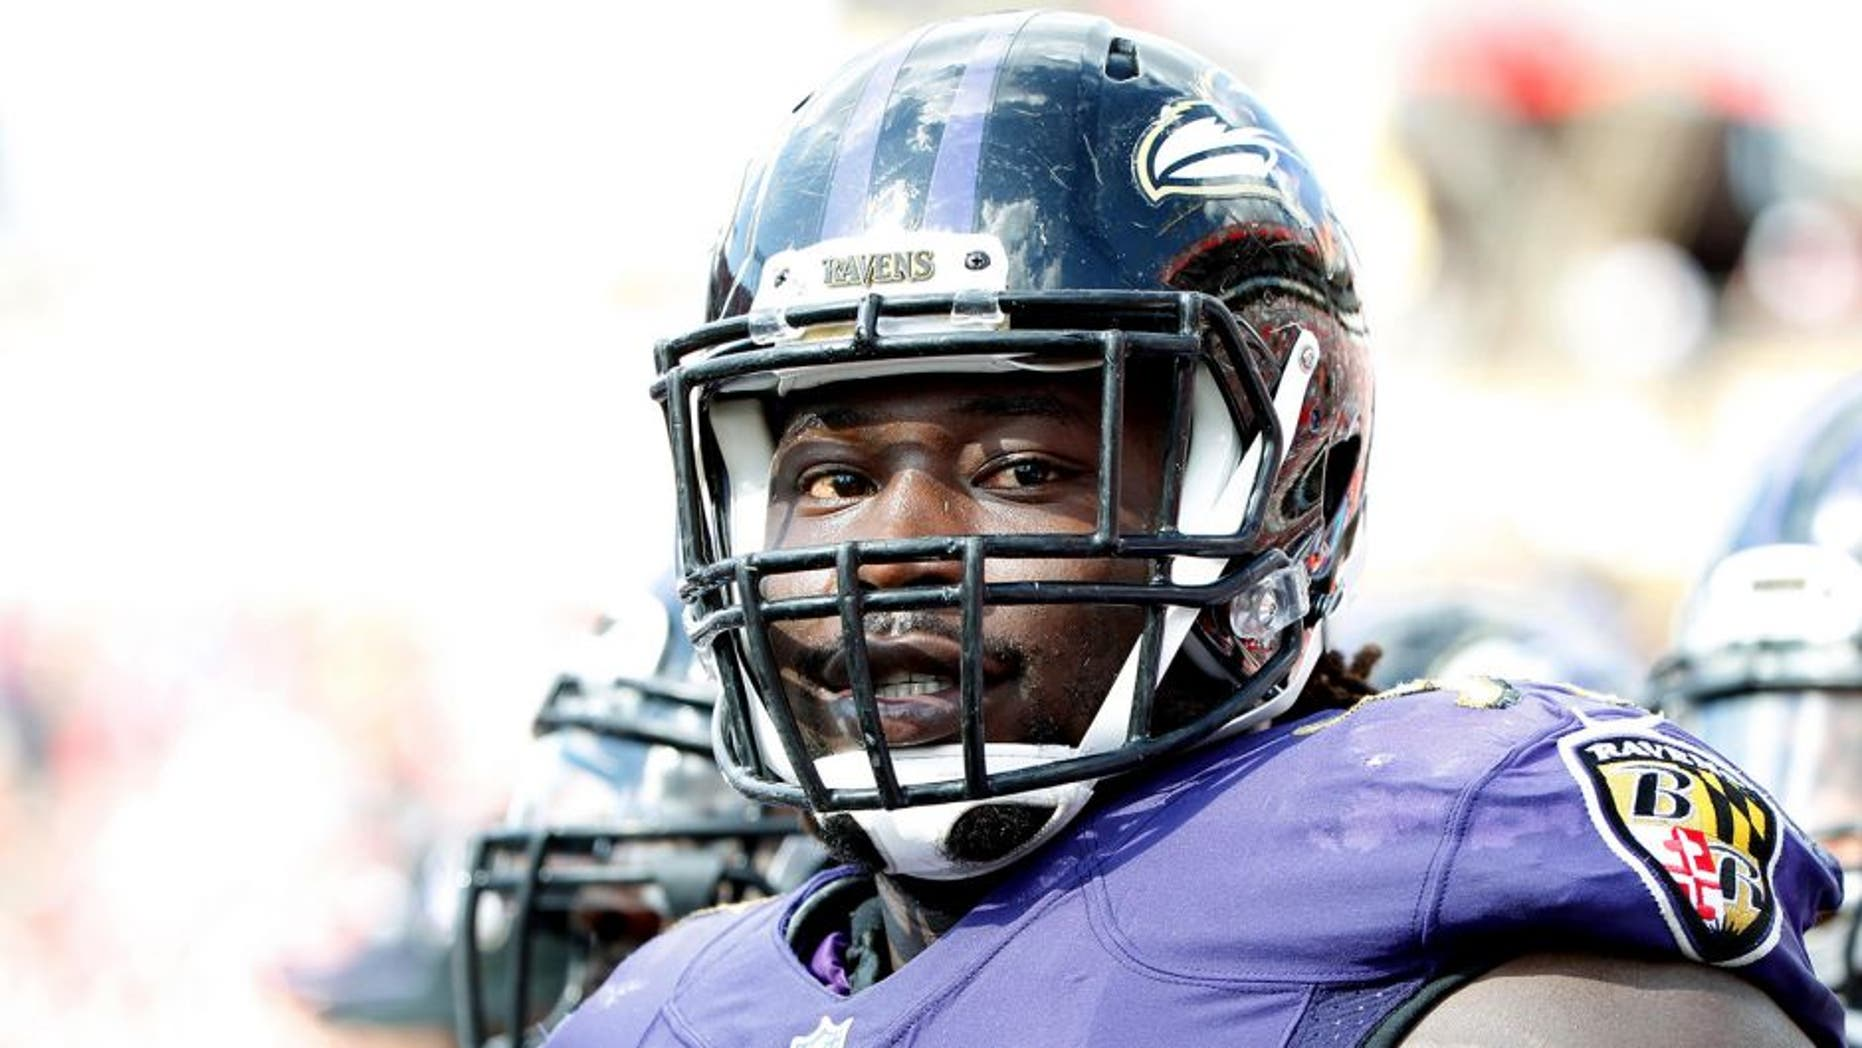 Oct 12, 2014; Tampa, FL, USA; Baltimore Ravens linebacker Pernell McPhee (90) against the Tampa Bay Buccaneers during the second half at Raymond James Stadium. Baltimore Ravens defeated the Tampa Bay Buccaneers 48-17. Mandatory Credit: Kim Klement-USA TODAY Sports